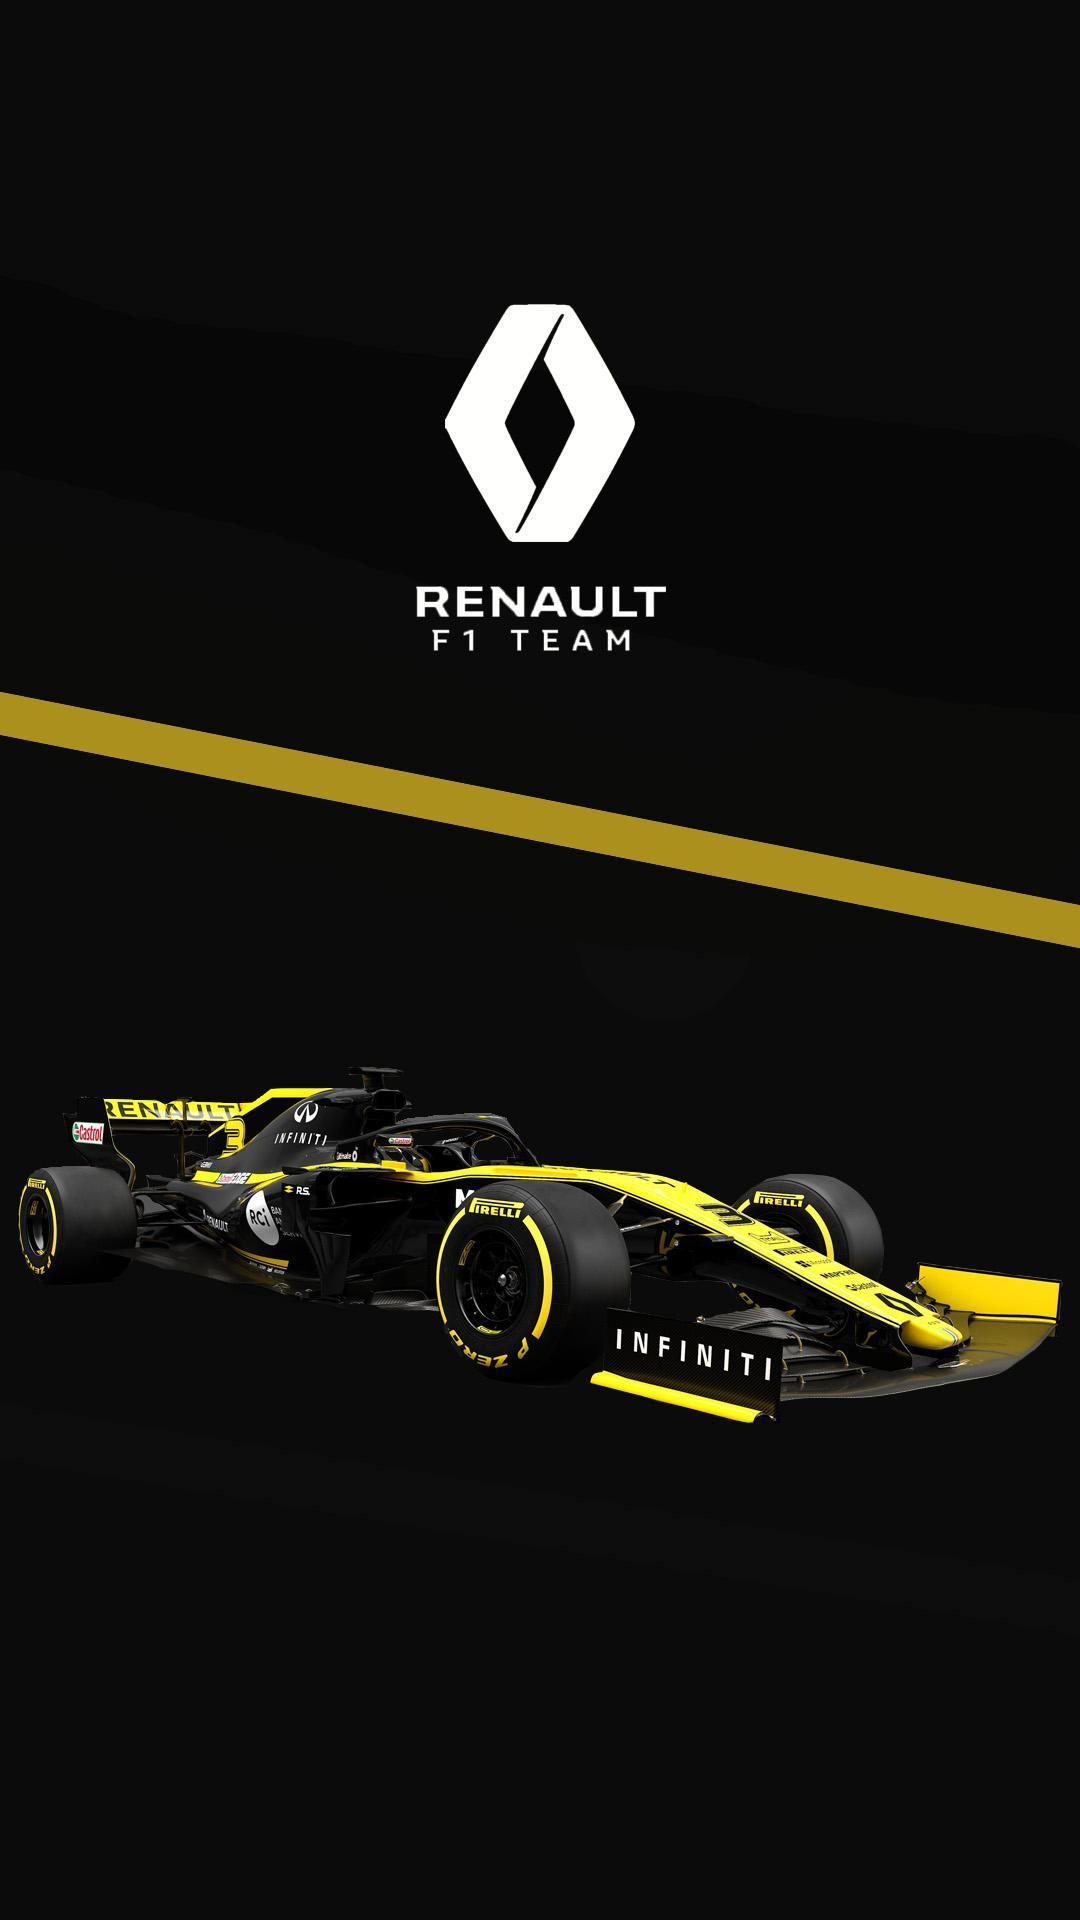 Renault 2019 phone wallpapers I made : formula1